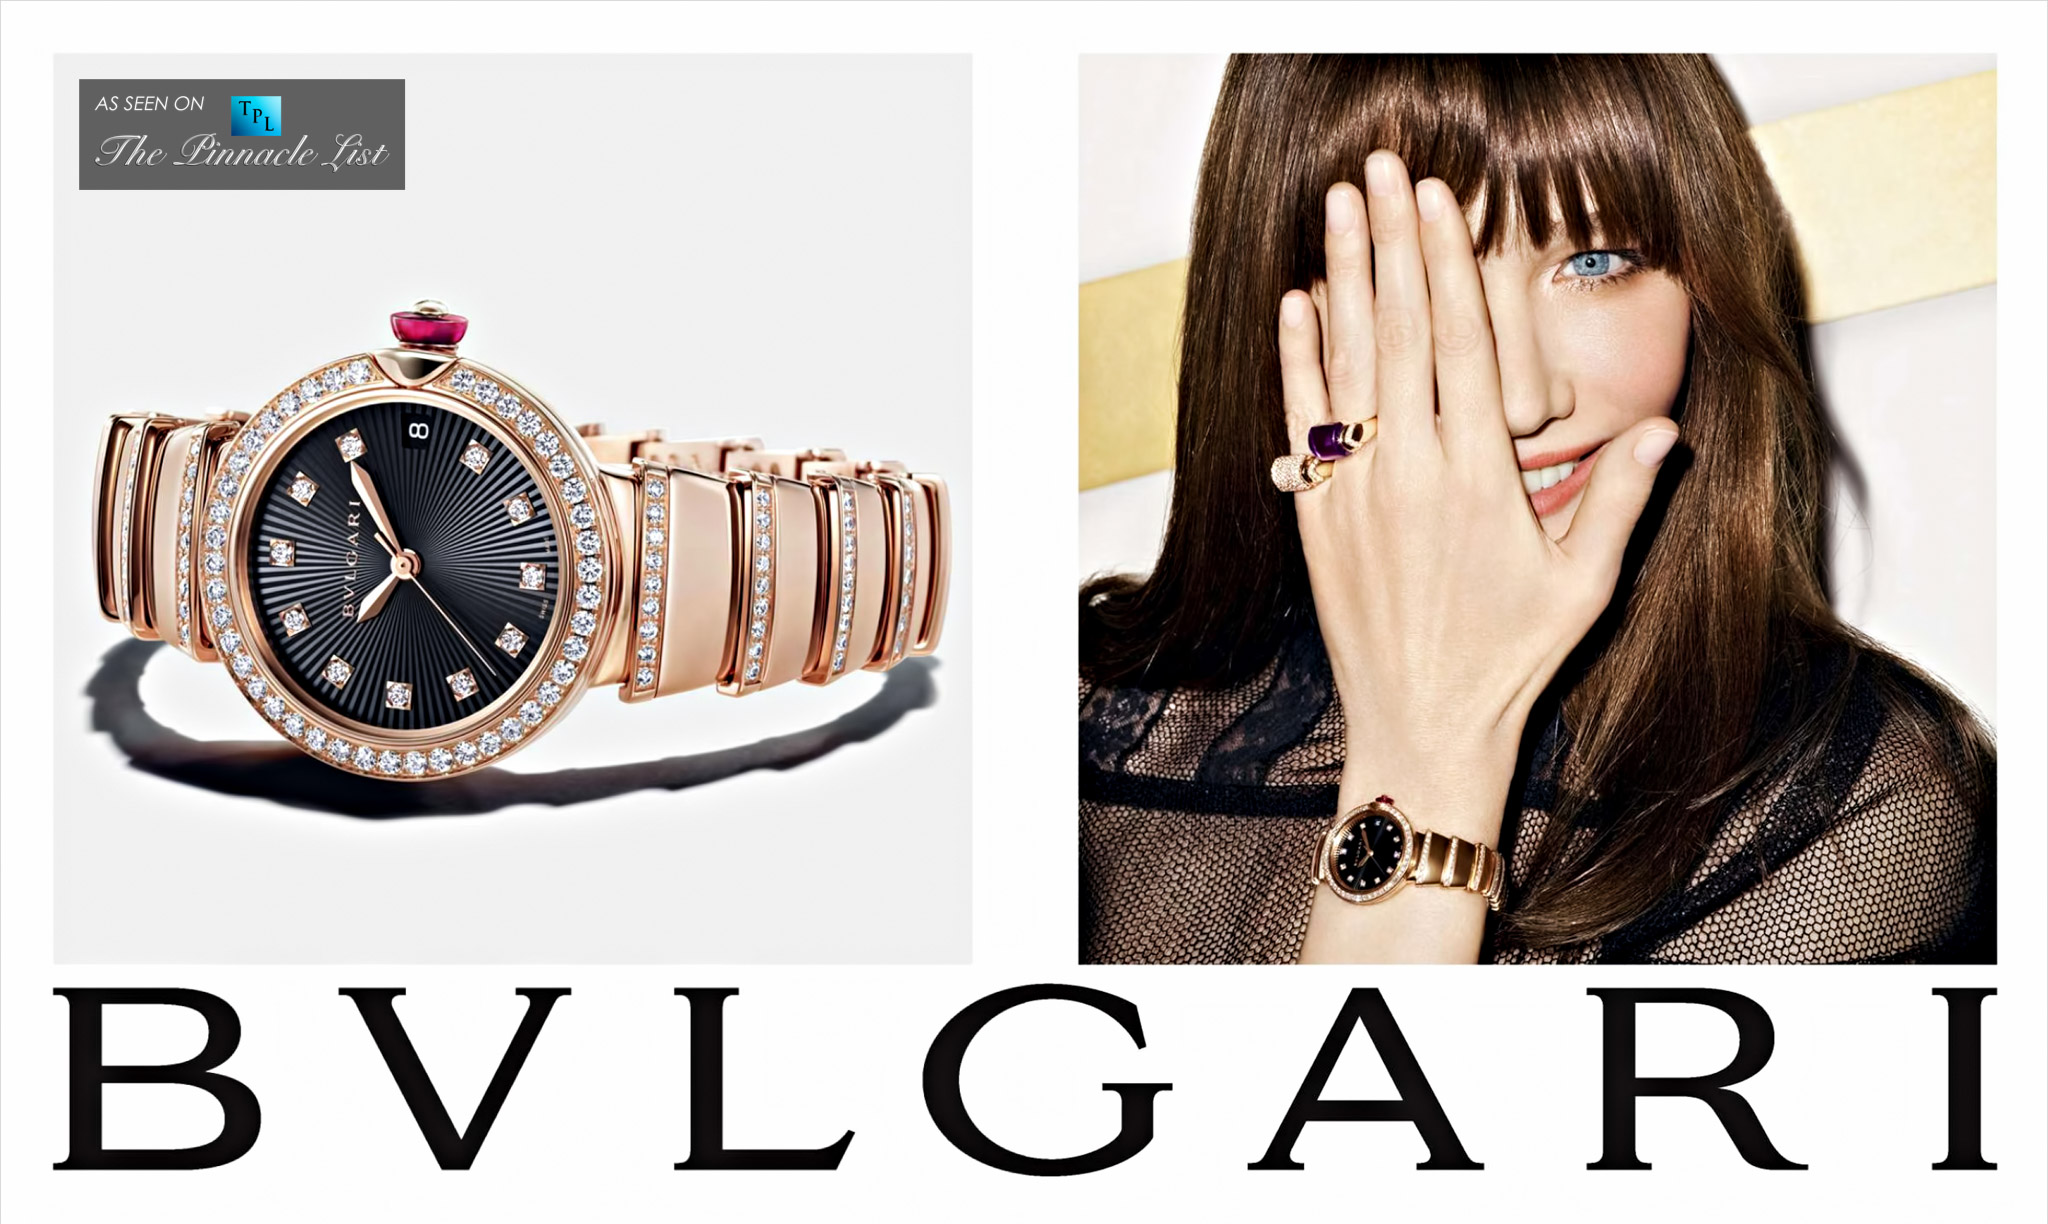 Wearable Luxury - Living like the Rich and Famous - Opulent Valentine's Day Ideas for You and Your Love